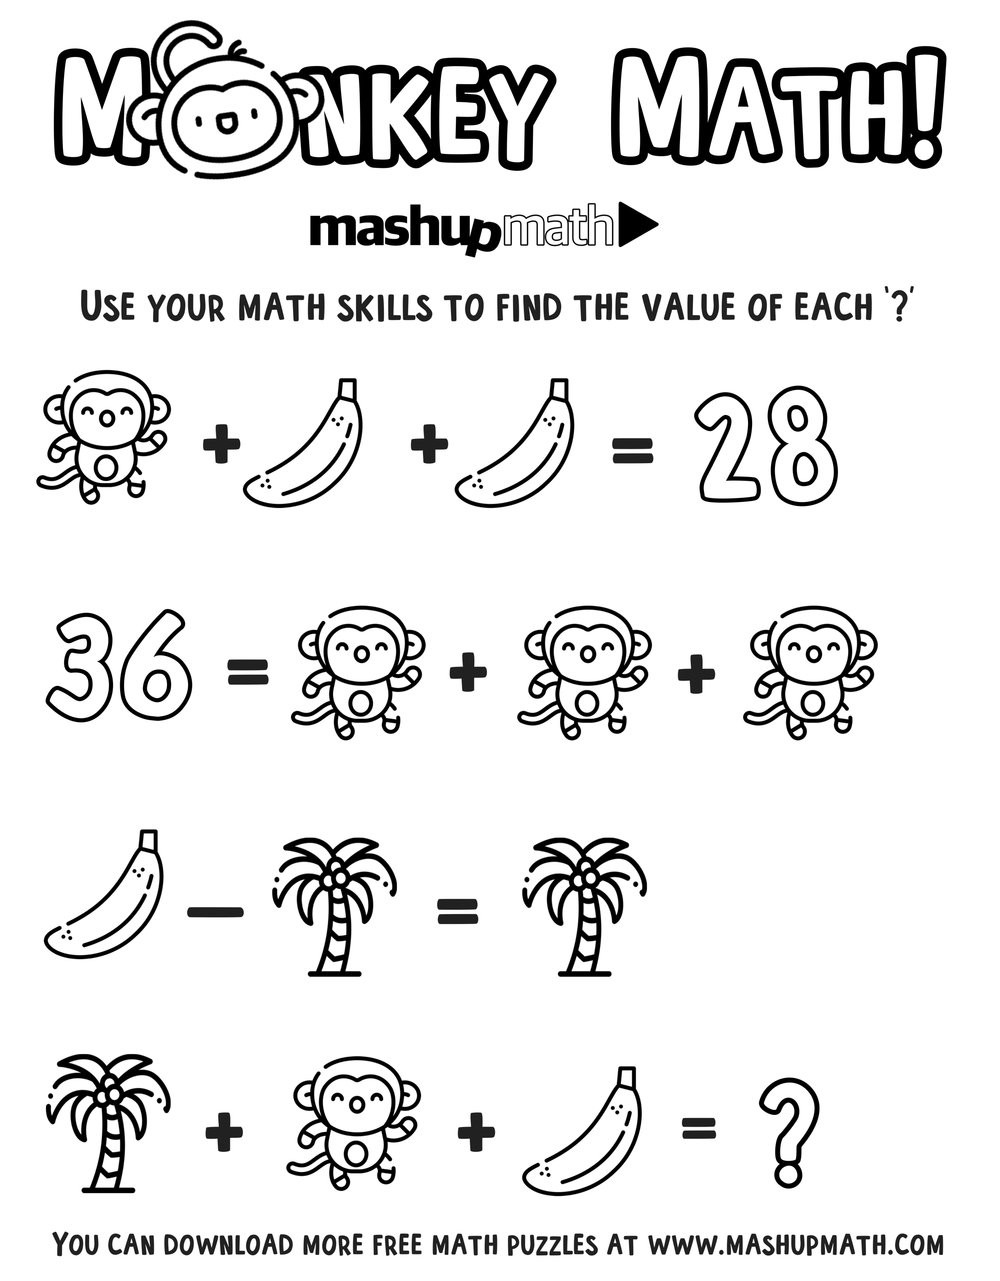 6th Grade Math Puzzles Worksheets Multiplication Coloring Worksheets Monkeymathcoloring Free